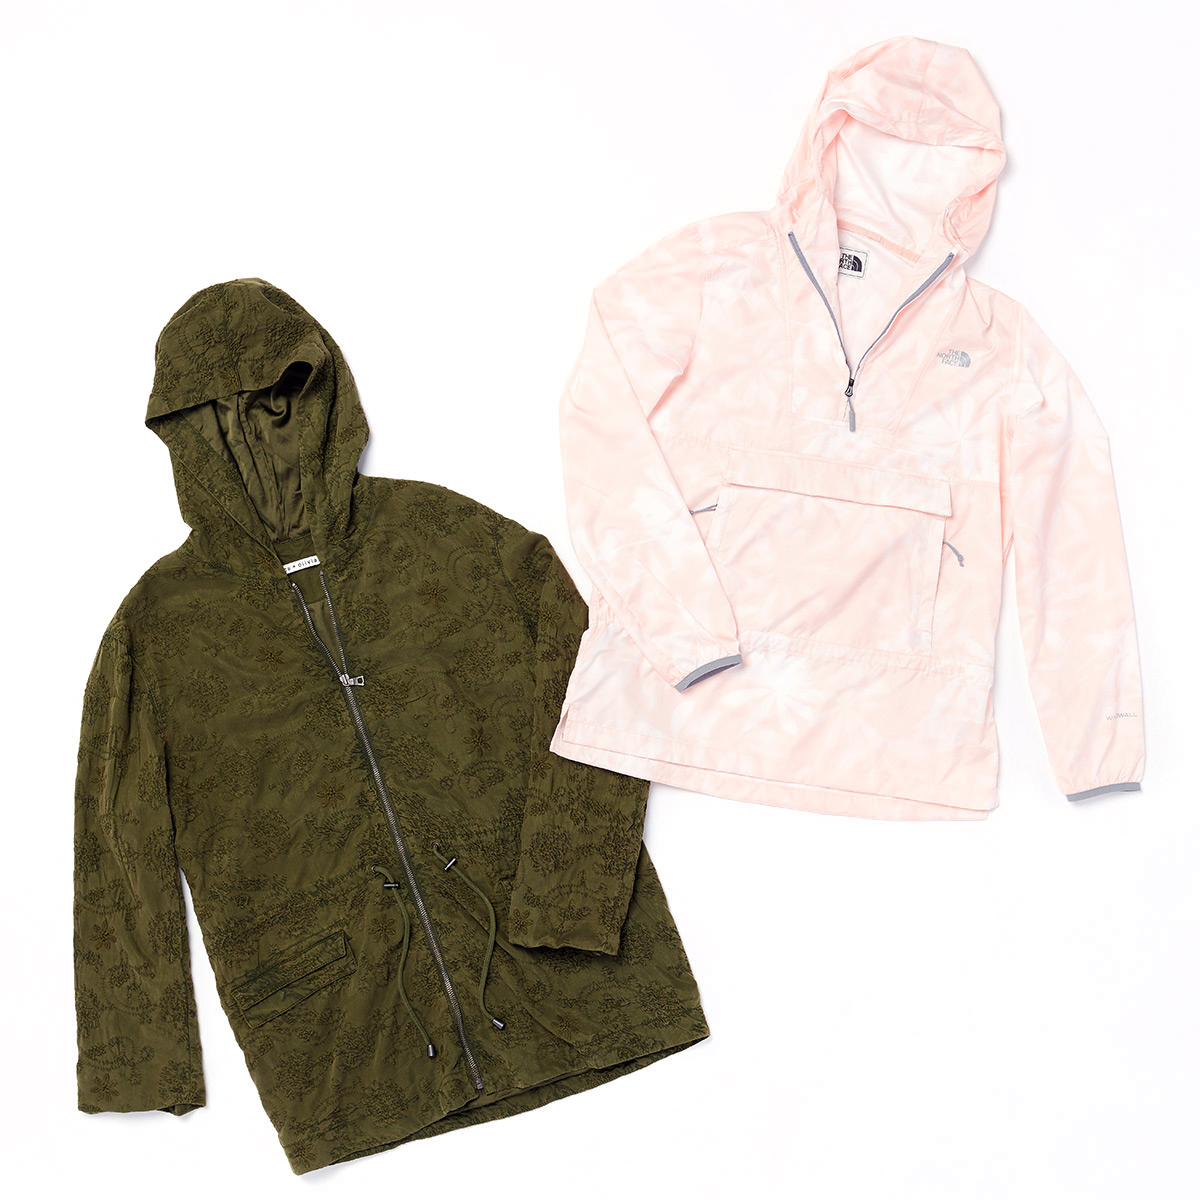 Two women's parkas - one green and the other a light patterned pink - laid flat on a white background.